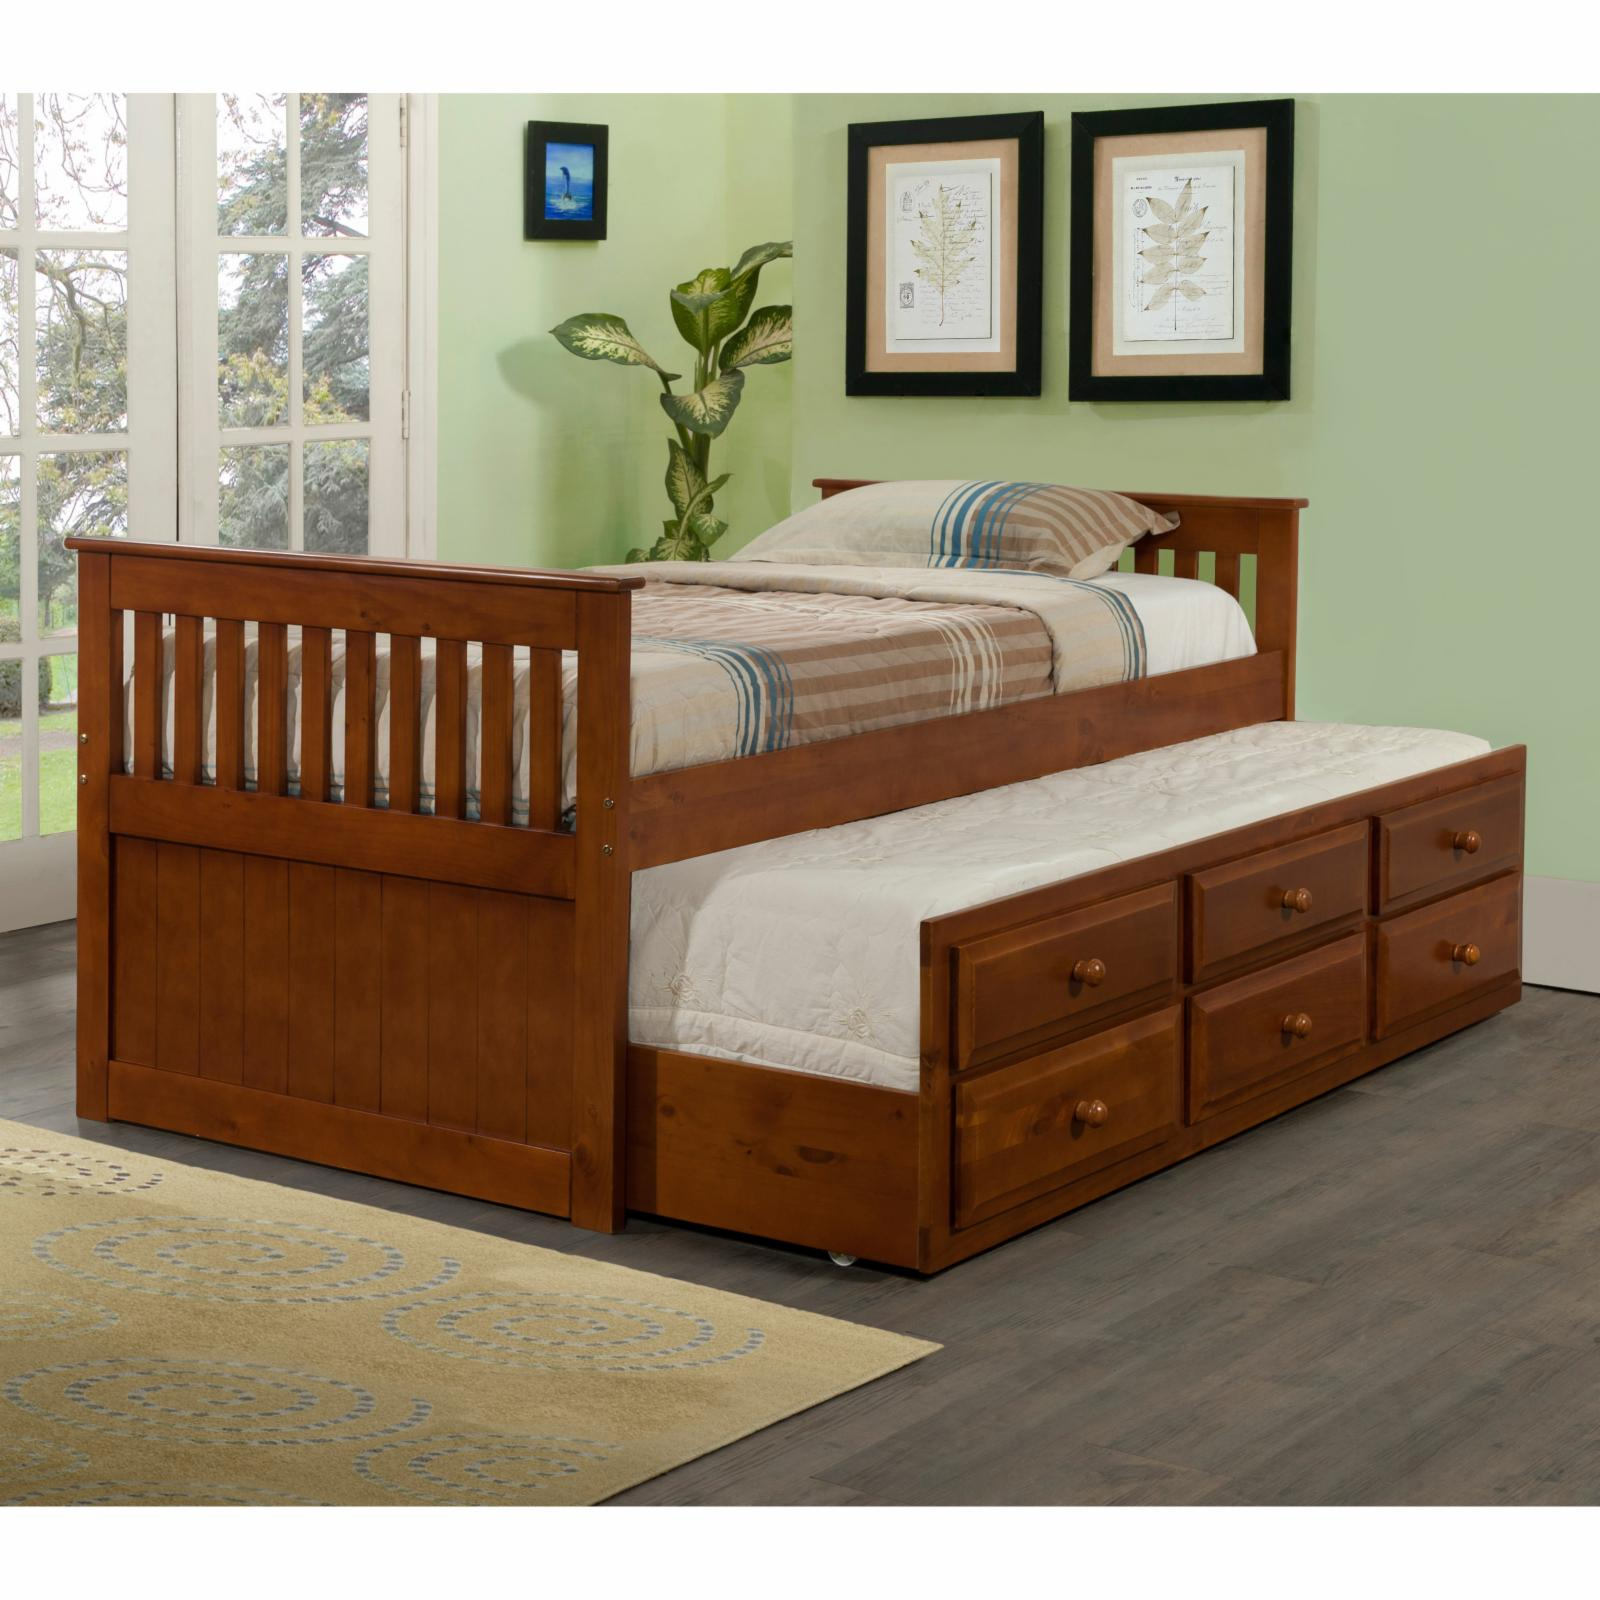 Donco Kids Captains Twin Trundle Bed, Size: Full/Double -...